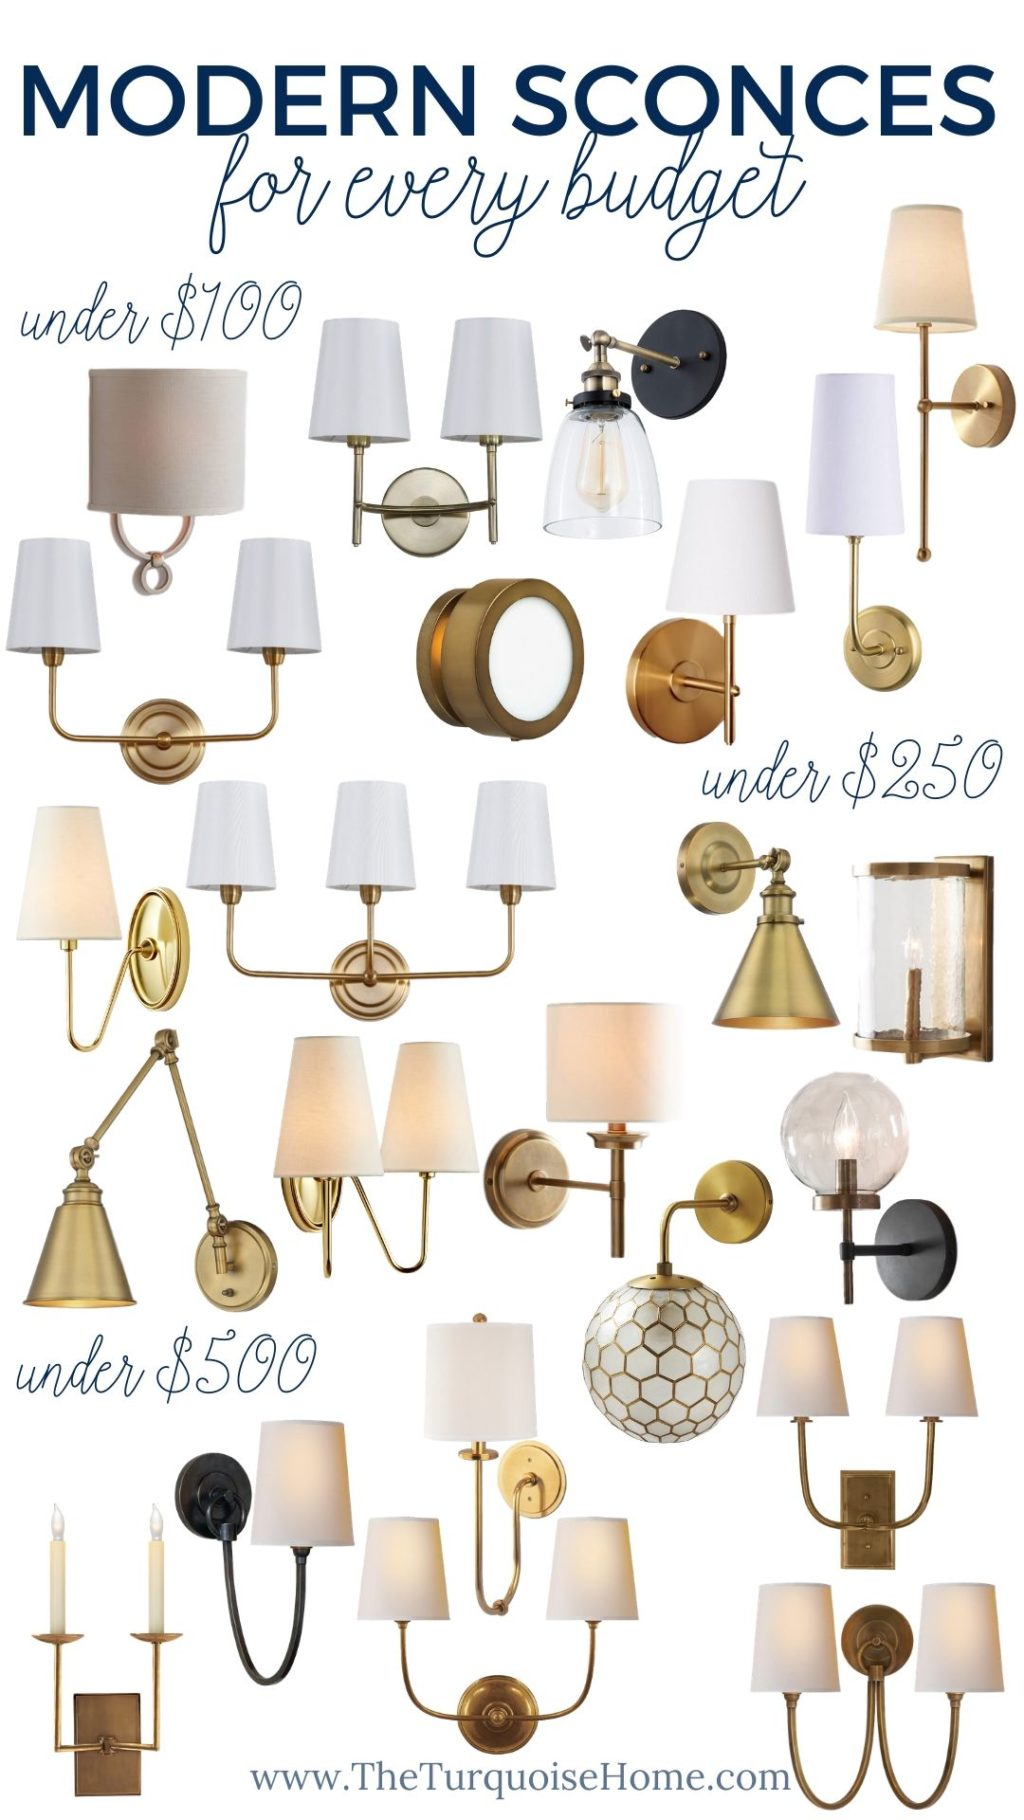 Modern Sconce Lighting for Every Budget